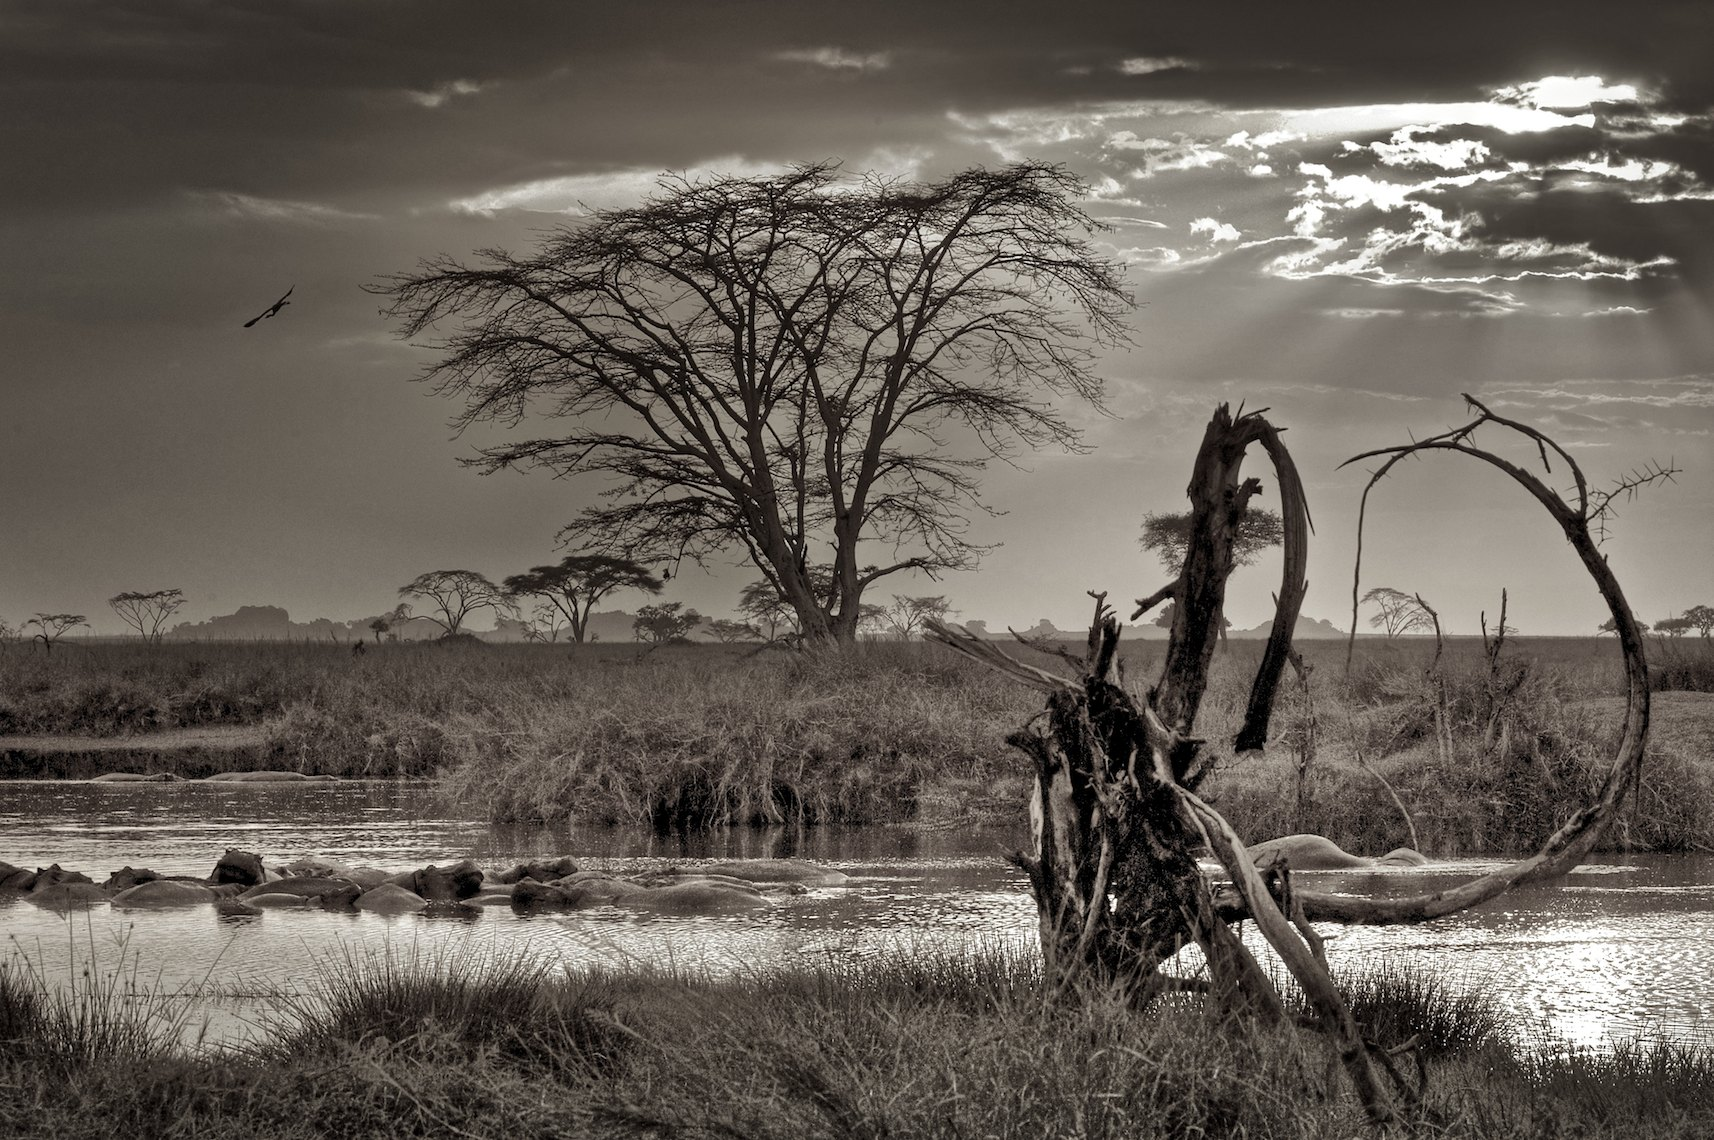 Tanzania Serengeti hippos landscape black and white